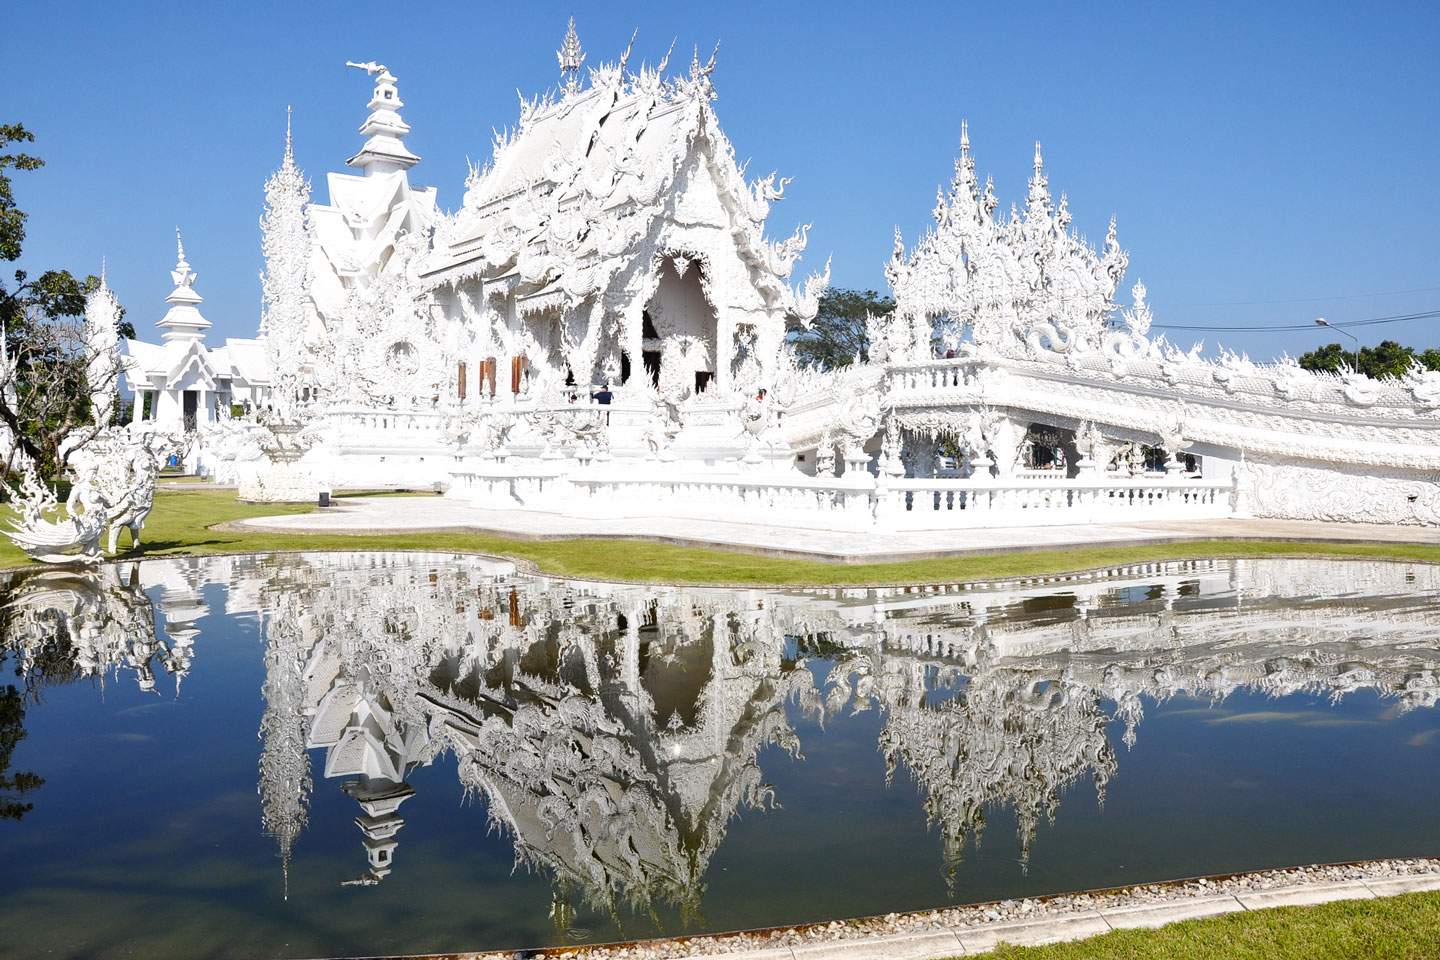 Chiang Mai To Chiang Rai Travel Guide On How To Get There